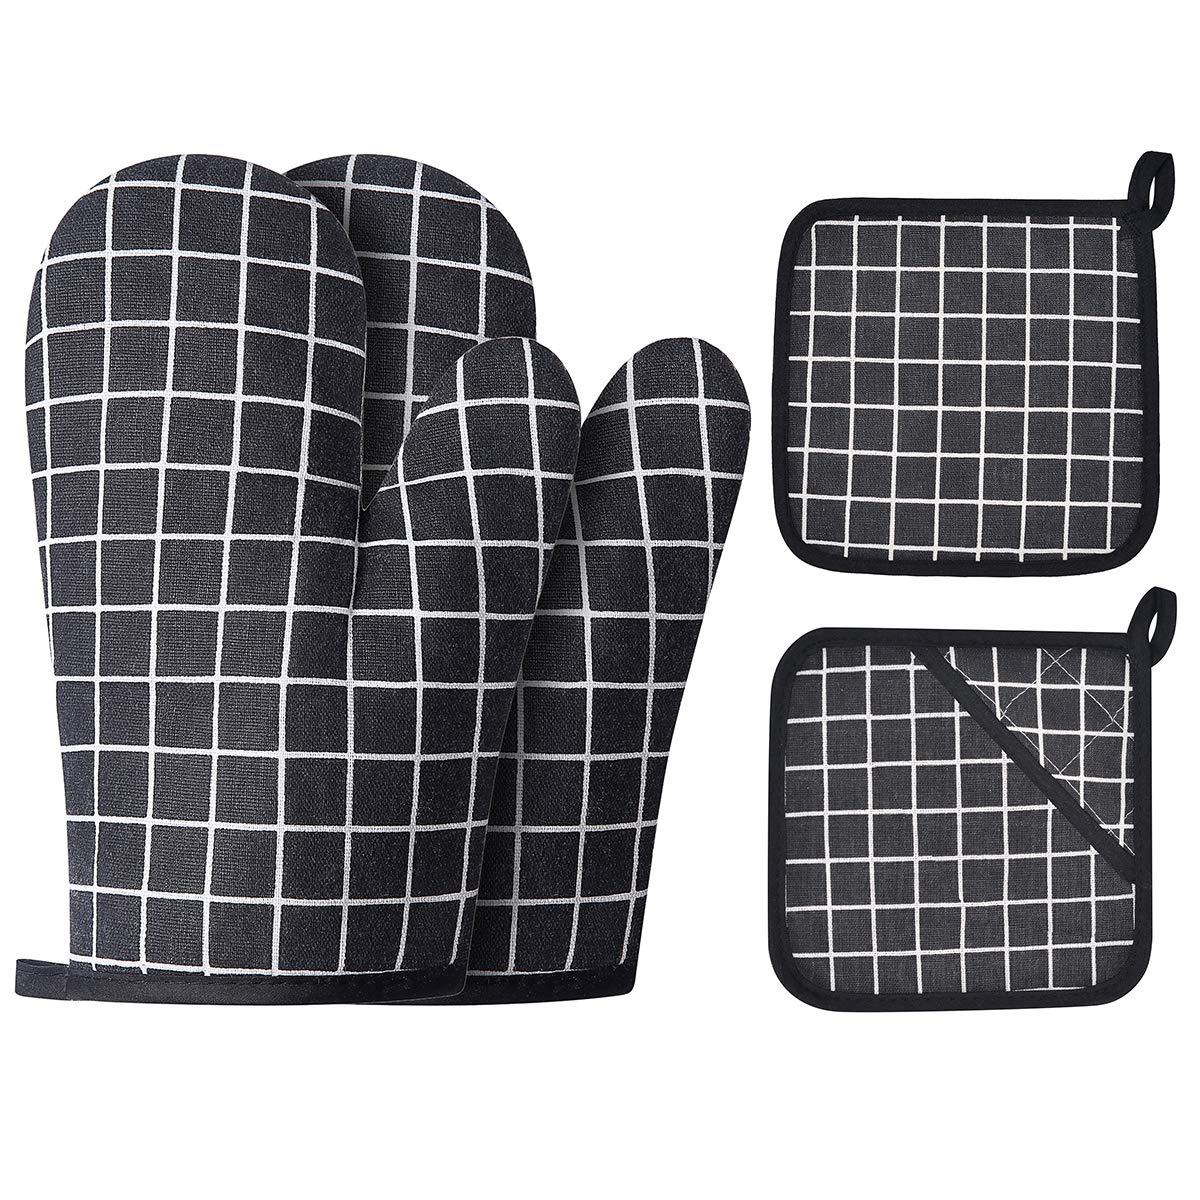 Win Change Oven Mitts and Potholders BBQ GlovesOven Mitts and Pot Holders with Recycled Cotton